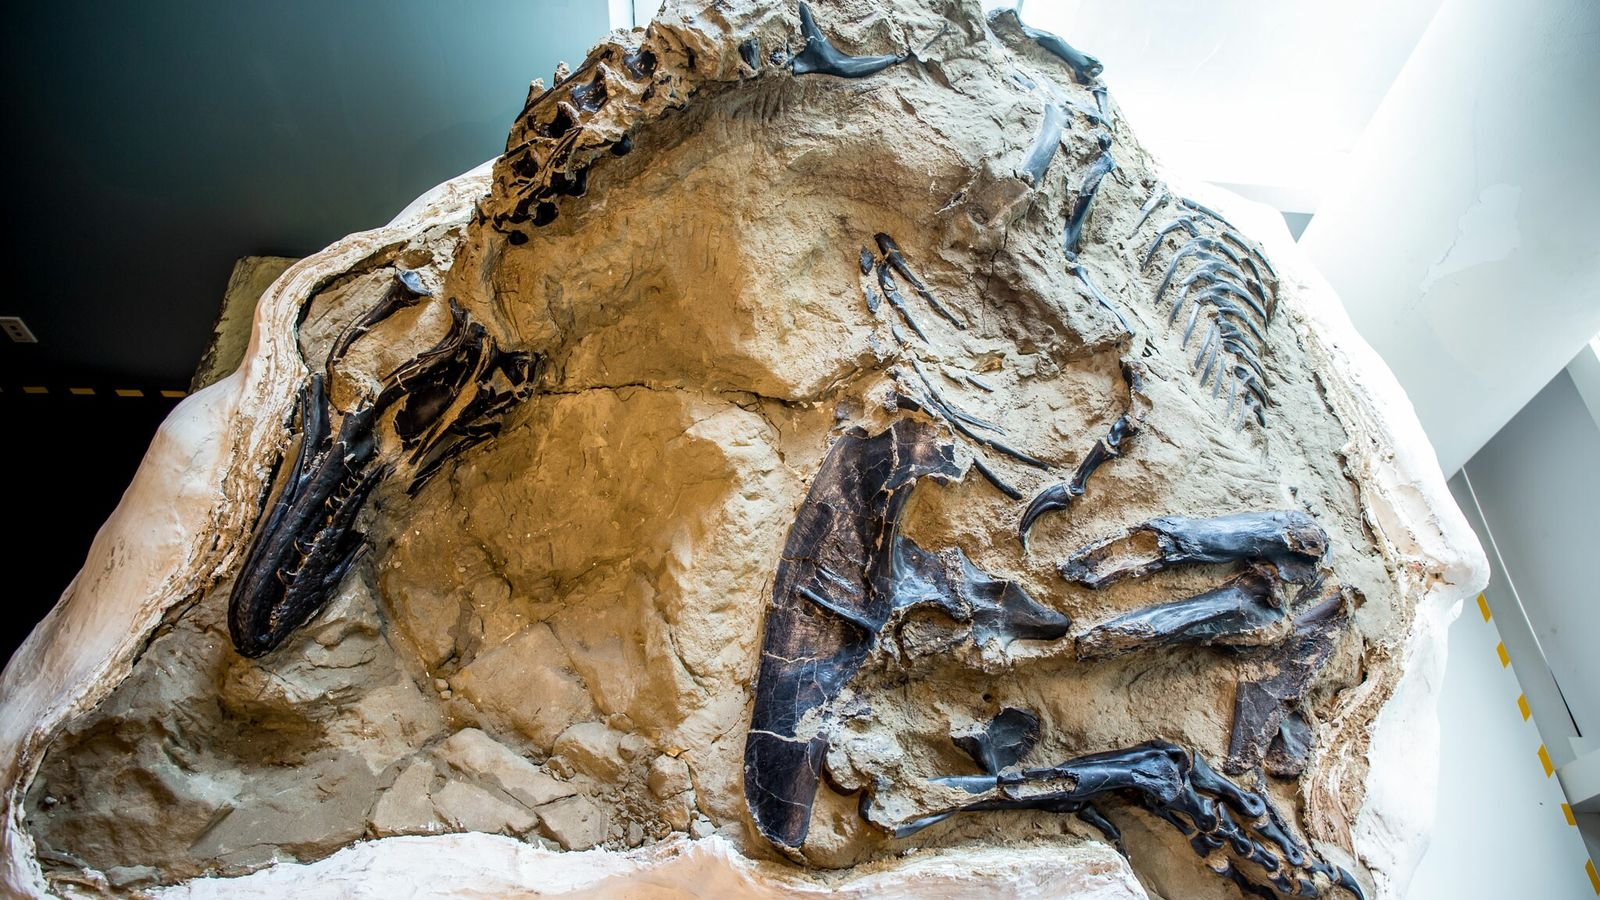 In 2006, commercial fossil hunters found this exquisite, nearly complete tyrannosaur alongside the bones of a ...